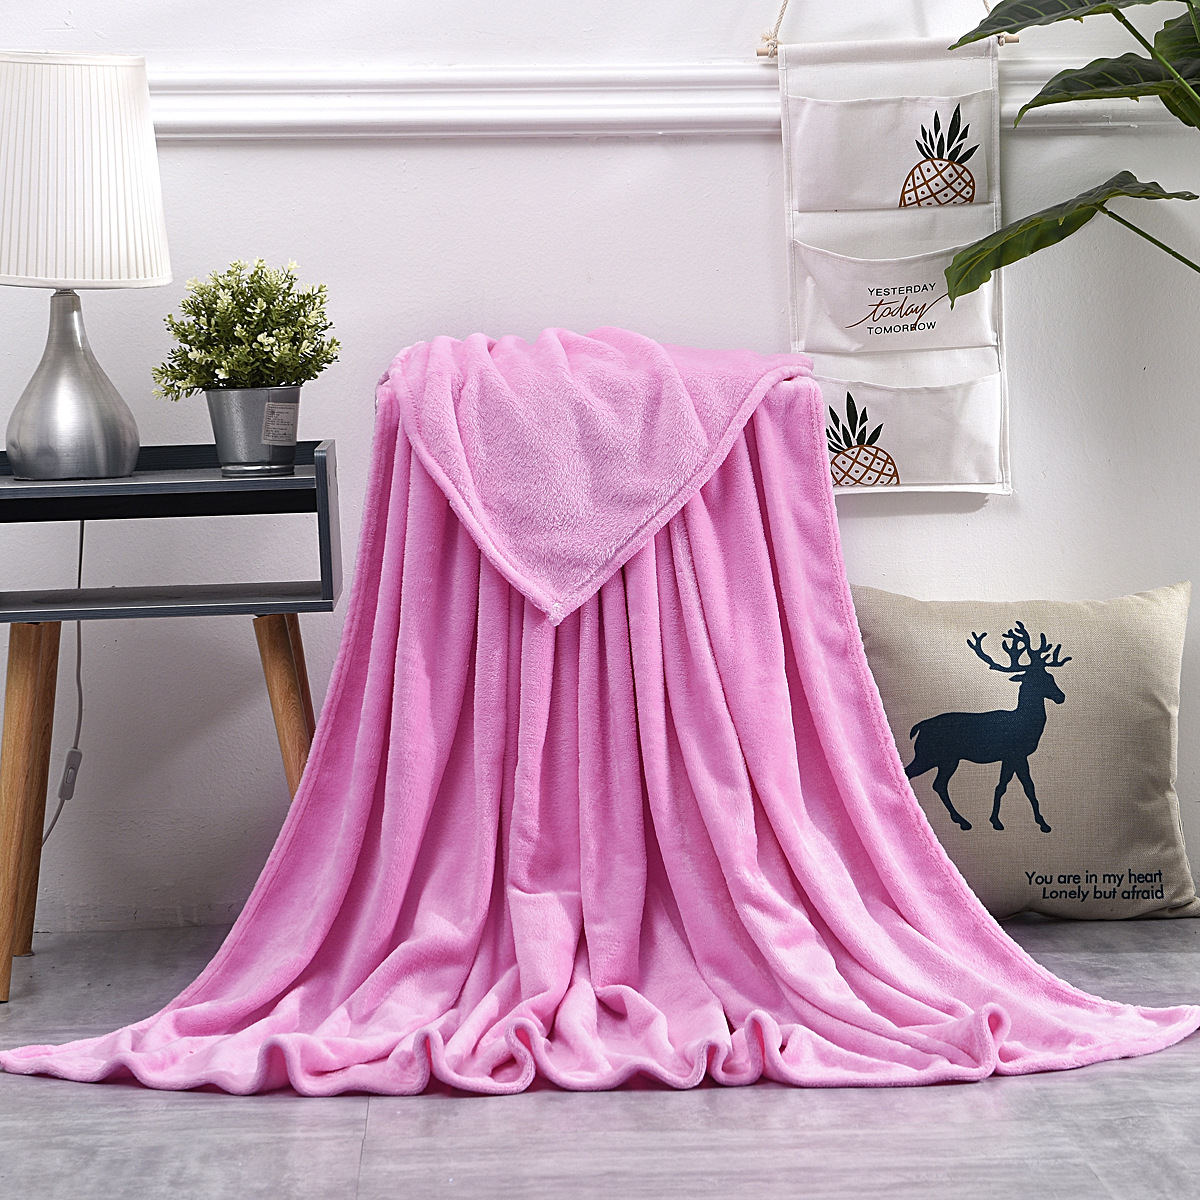 50x70 cm Soft Blanket Solid Color Flannel Coral Velvet Bedding Article Portable Winter Gift Office Nap Quilt Light Weight Throw